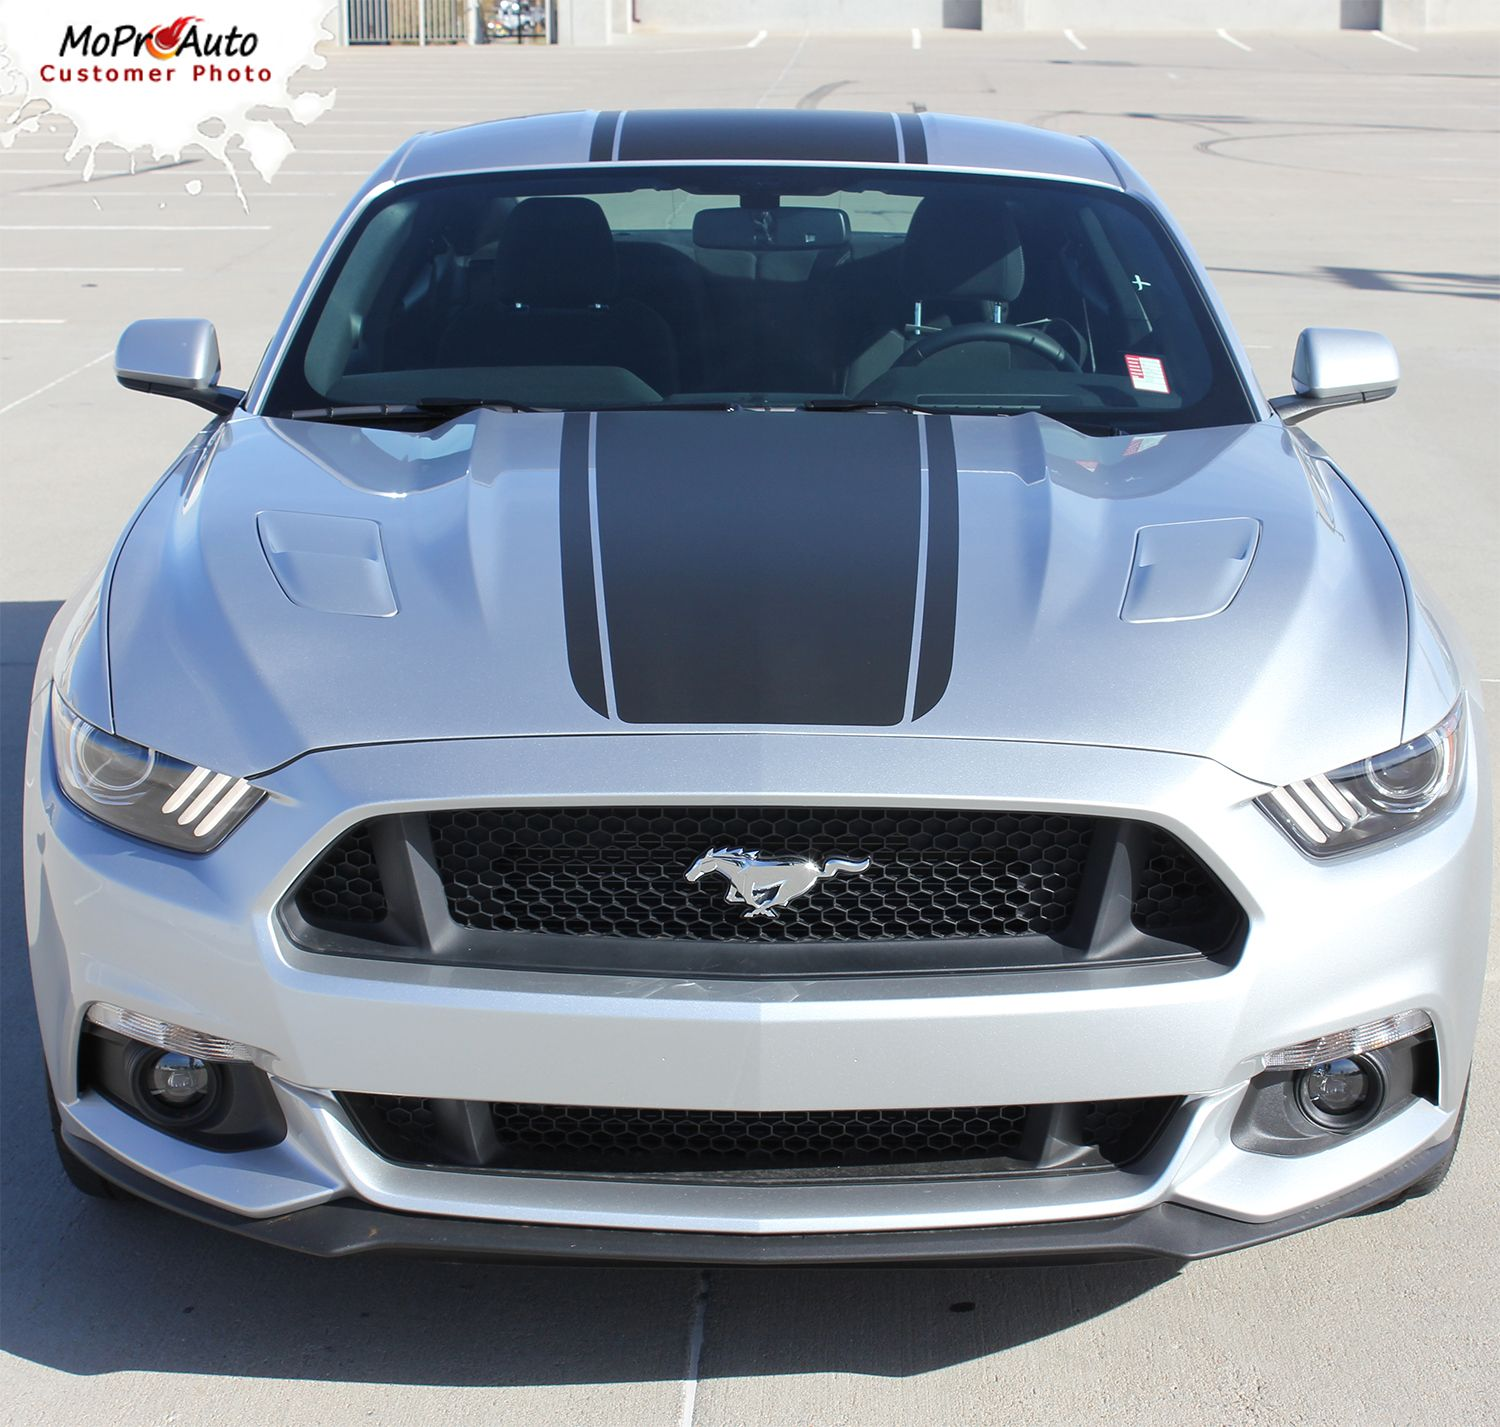 Median Ford Mustang Hood Stripes Wide Center Hood Decals